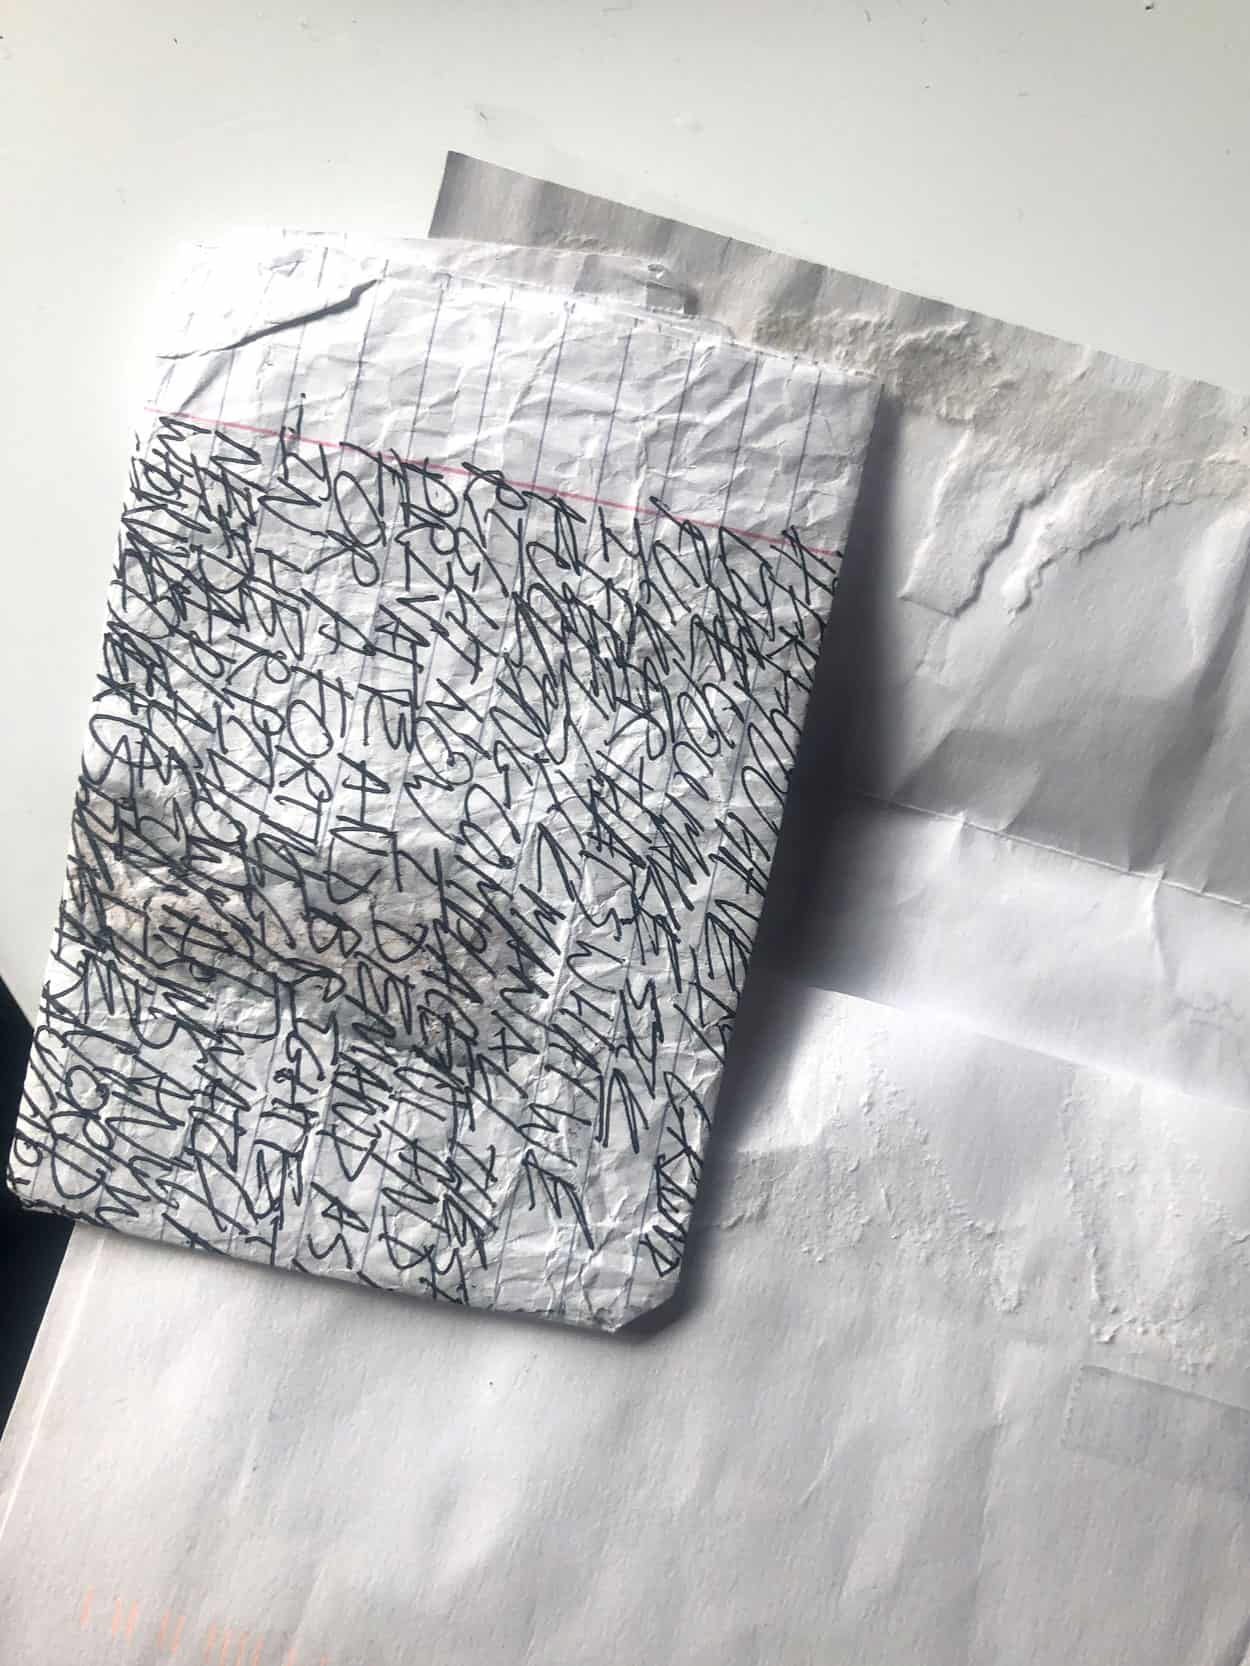 Photo of folded paper with writing